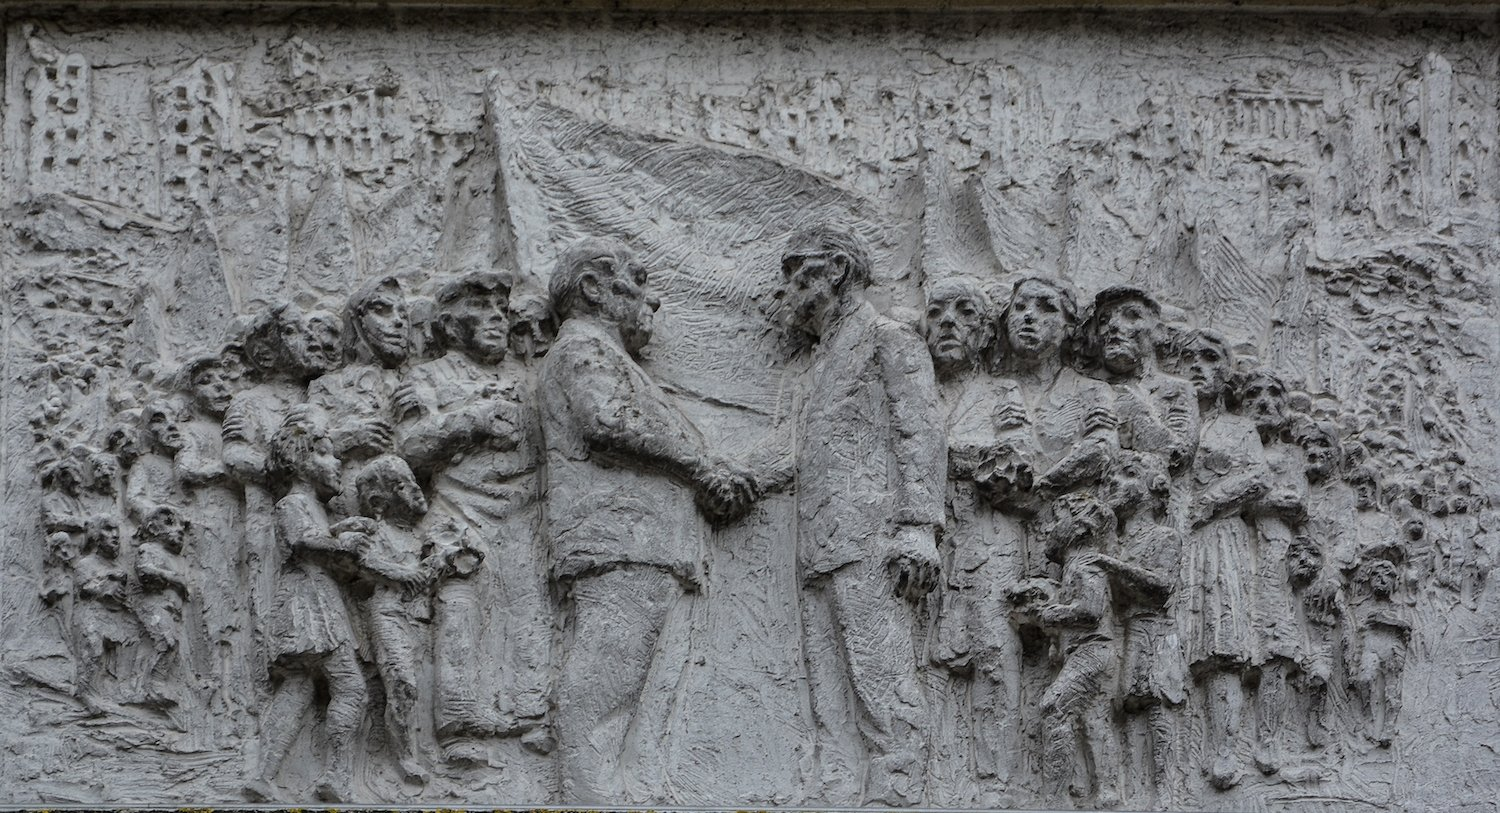 socialist mural kpd spd sed fries der sozialistischen Geschichte Berlins Gerhard Thieme socialist history of berlin relief frieze berlin germany socialsim communism east berlin east germany ddr